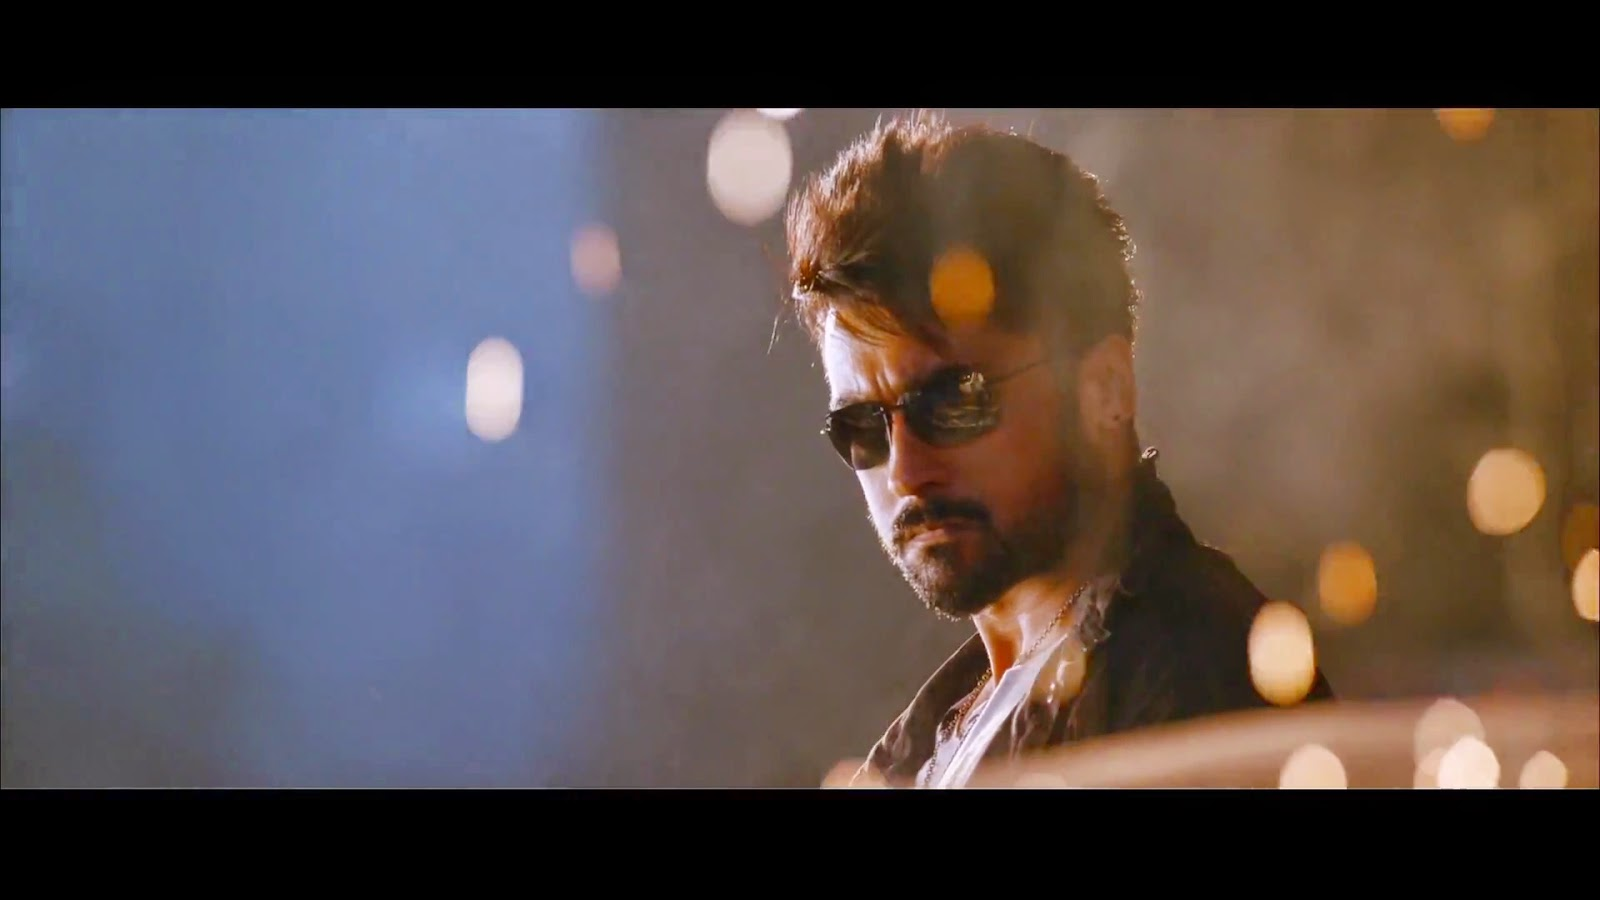 Suriya Sikandar Movie Stills In Hd: Anjaan Teaser Surya Photos And Teaser In HD